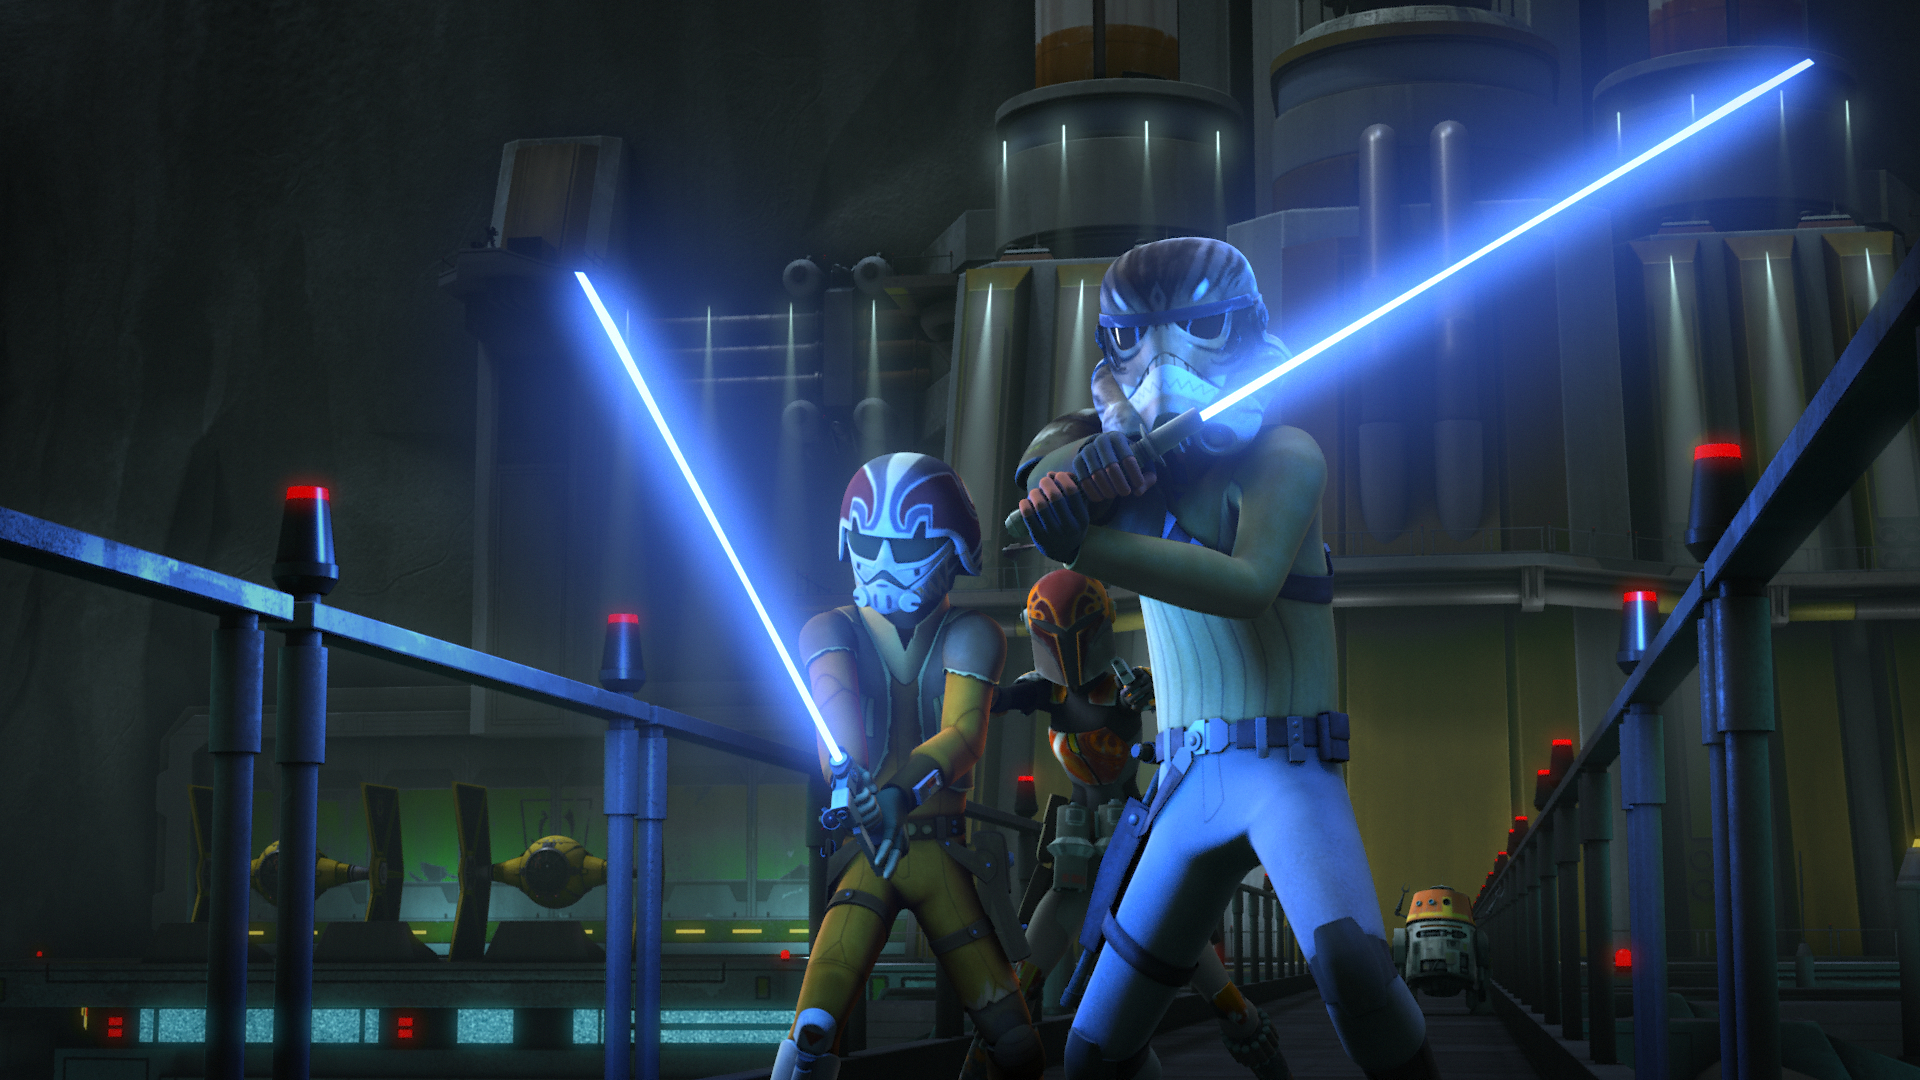 Star Wars Rebels The Call Clip And Images Sci Fi Movie Page